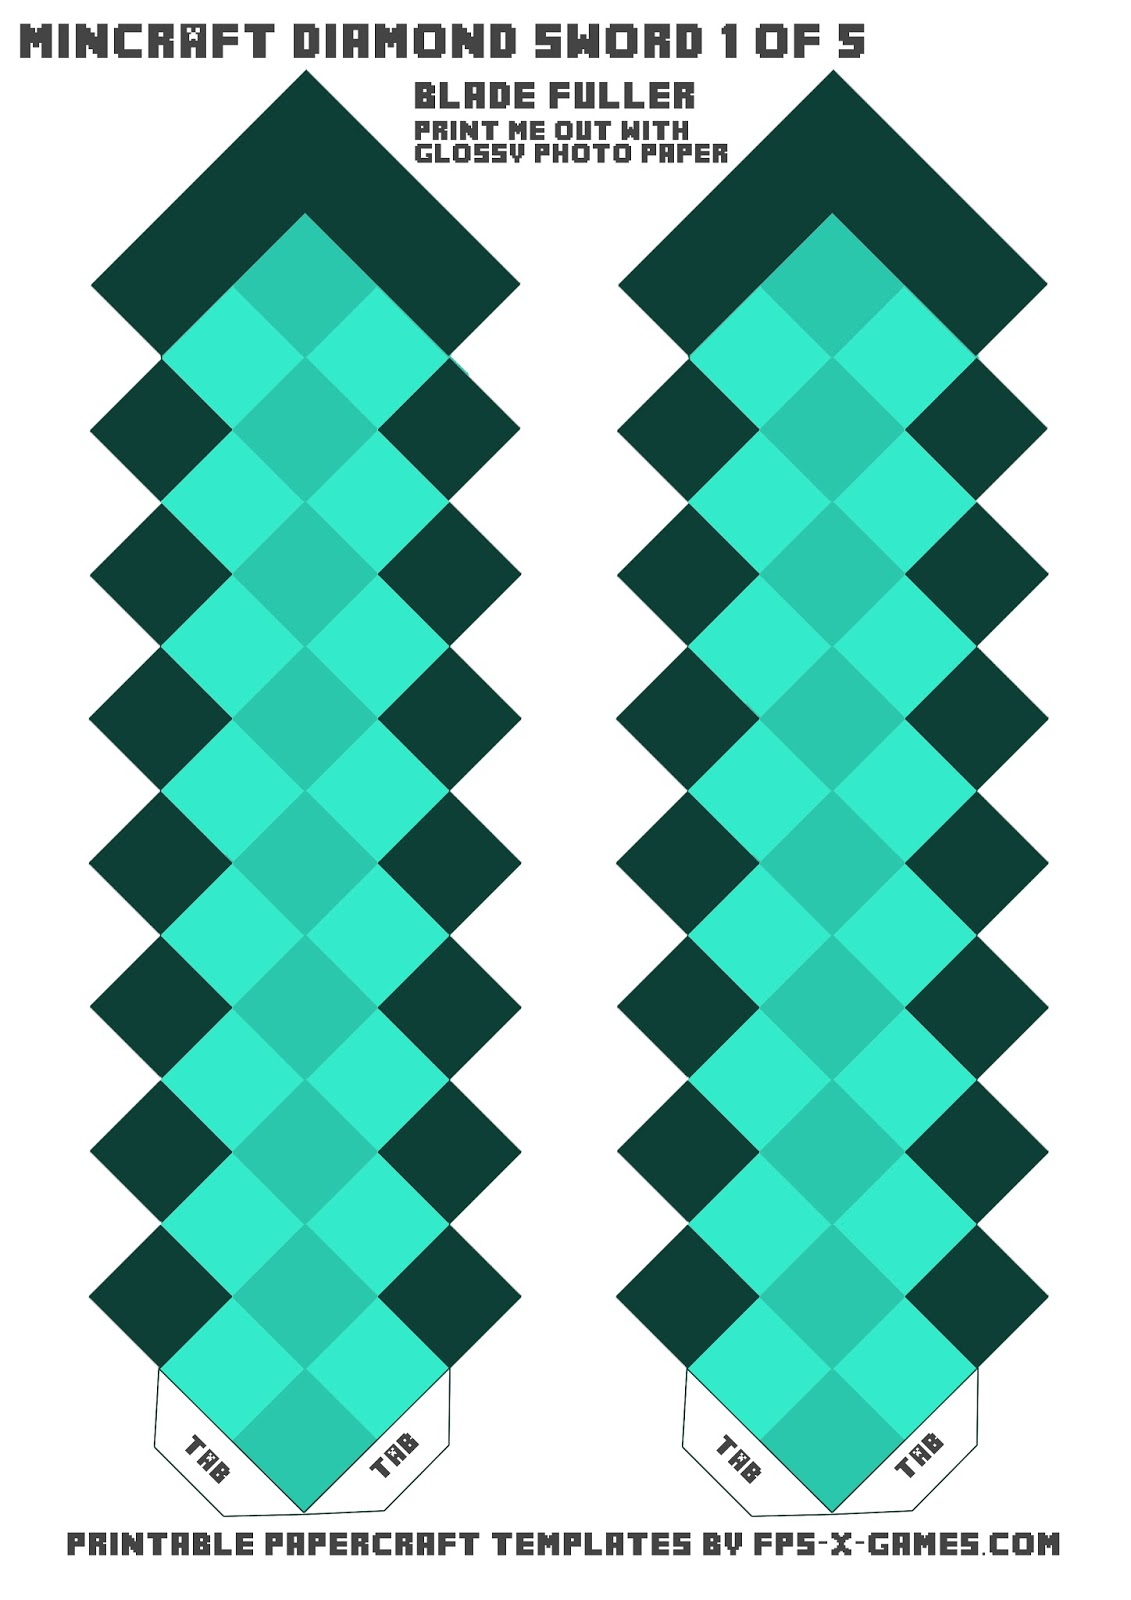 Minecraft diamond sword template one of five for Minecraft bookmark template